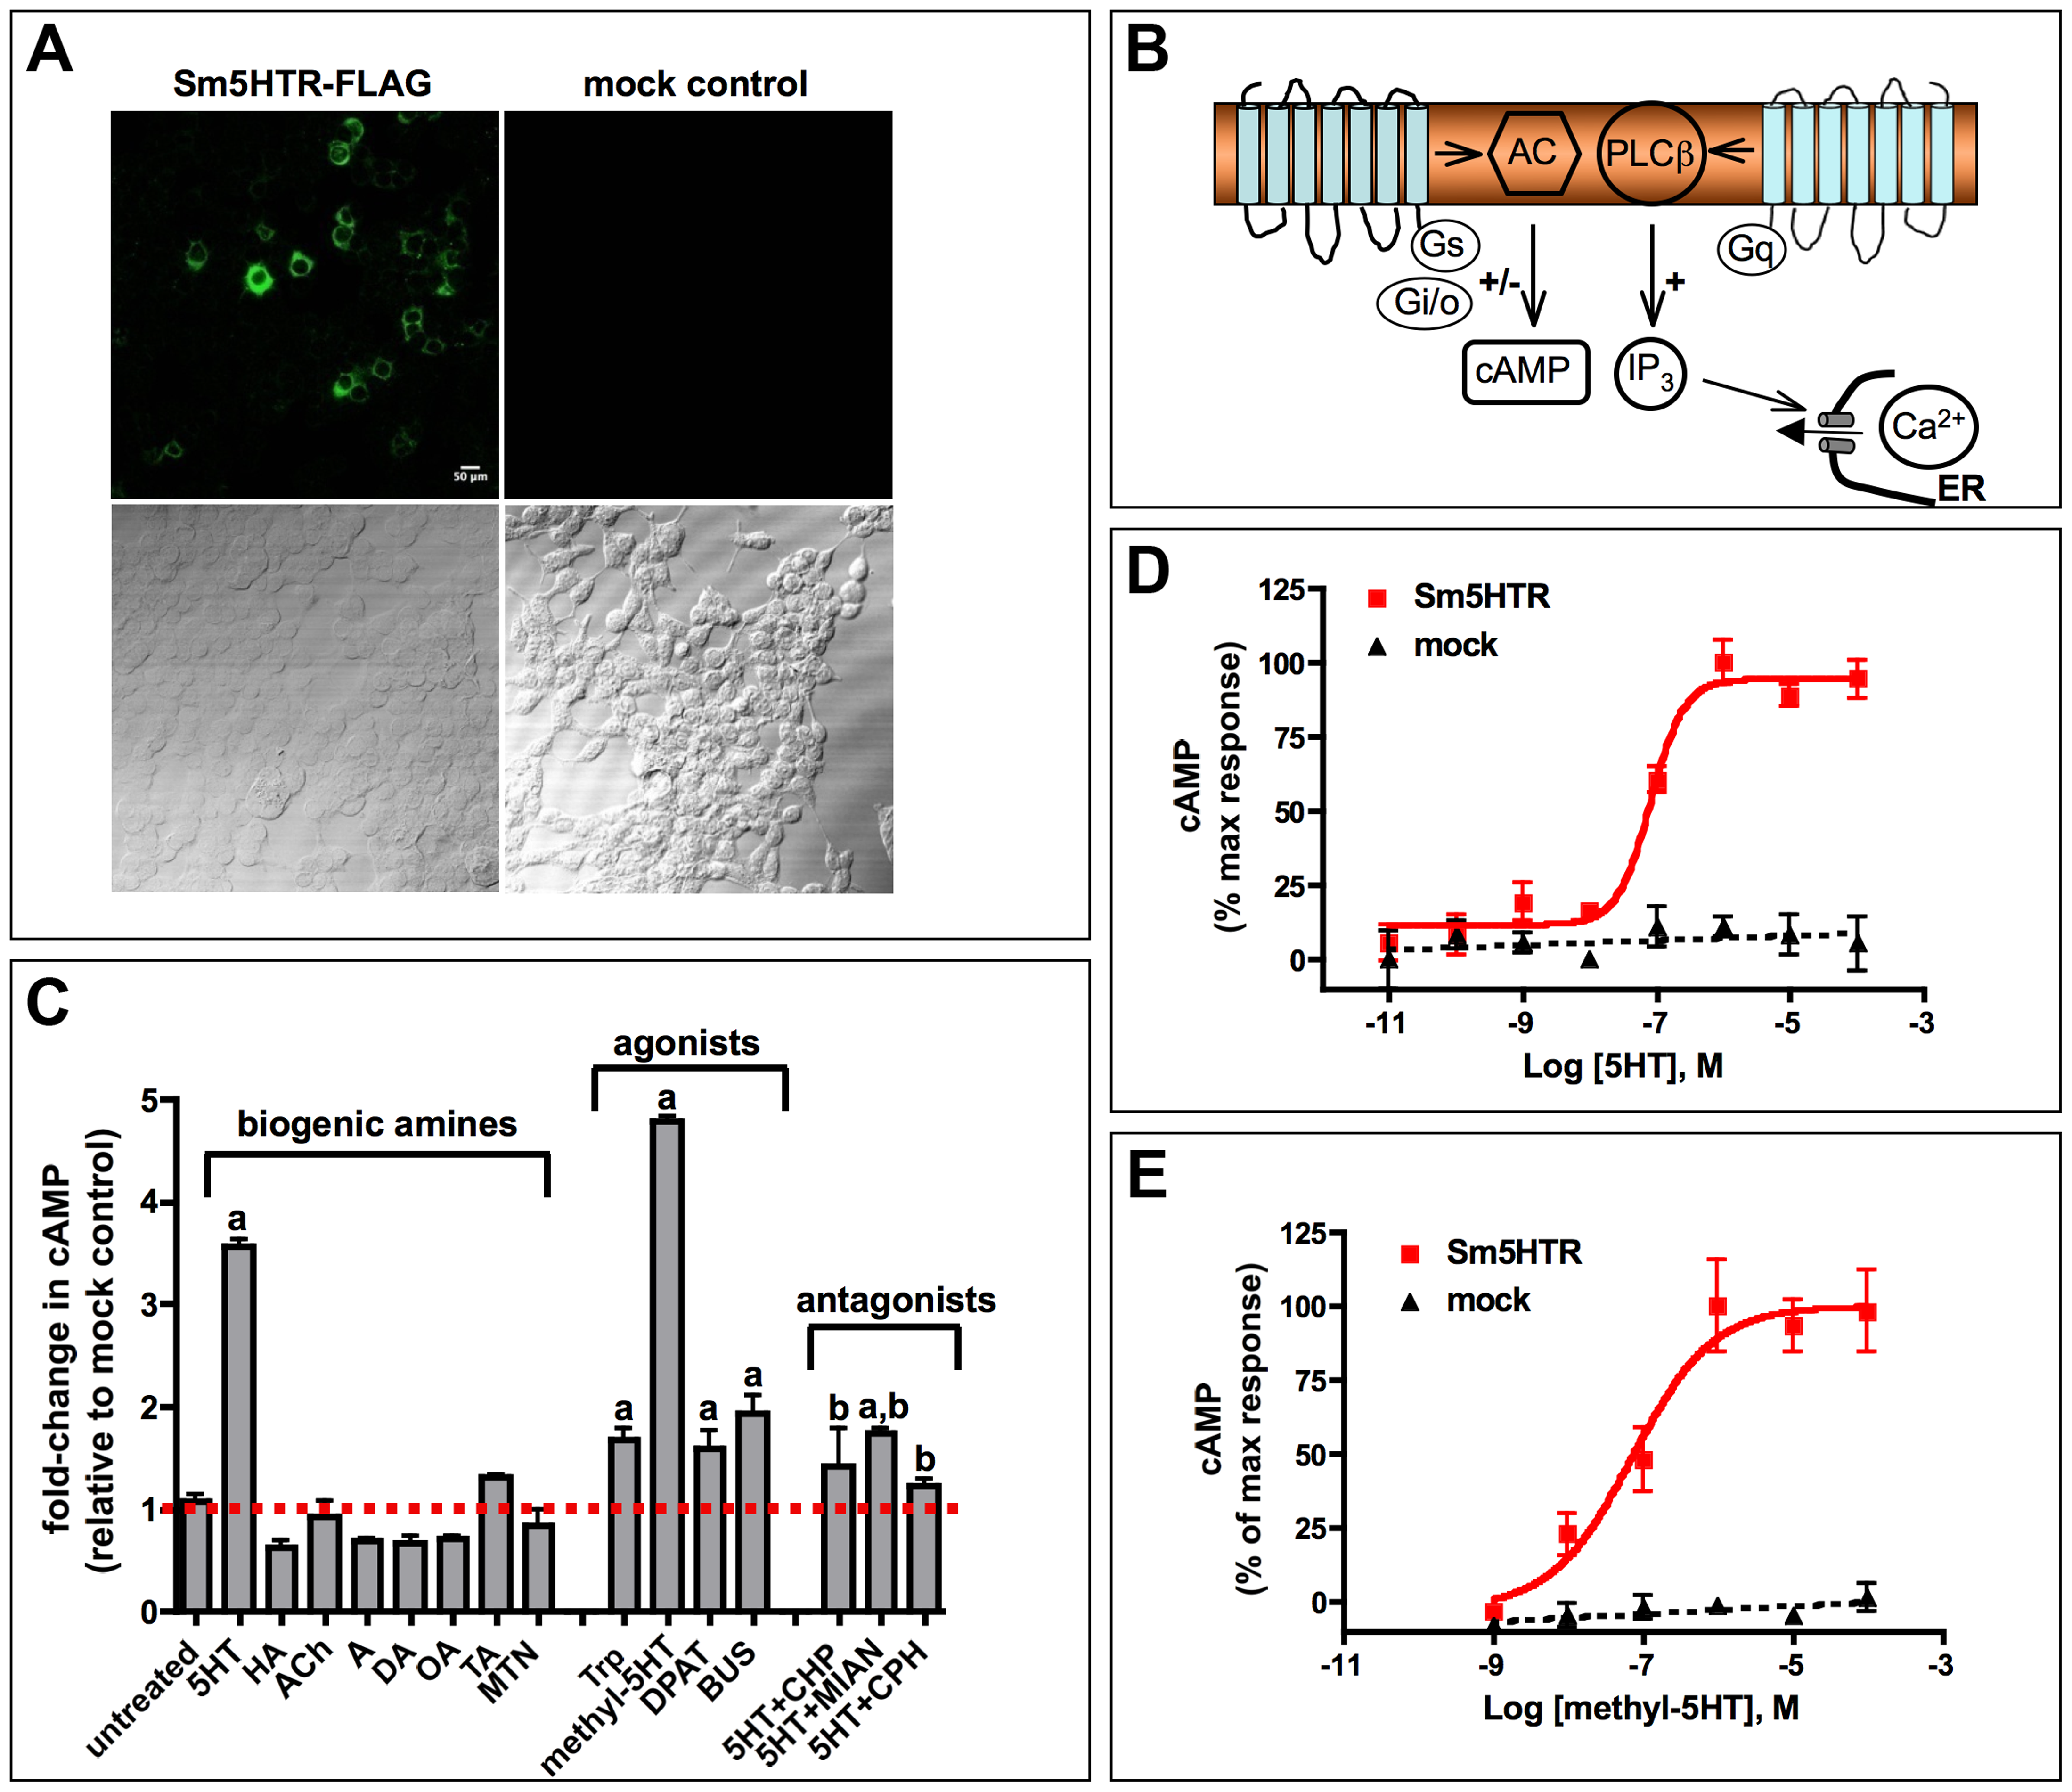 Functional expression of Sm5HTR in transfected HEK 293 cells.